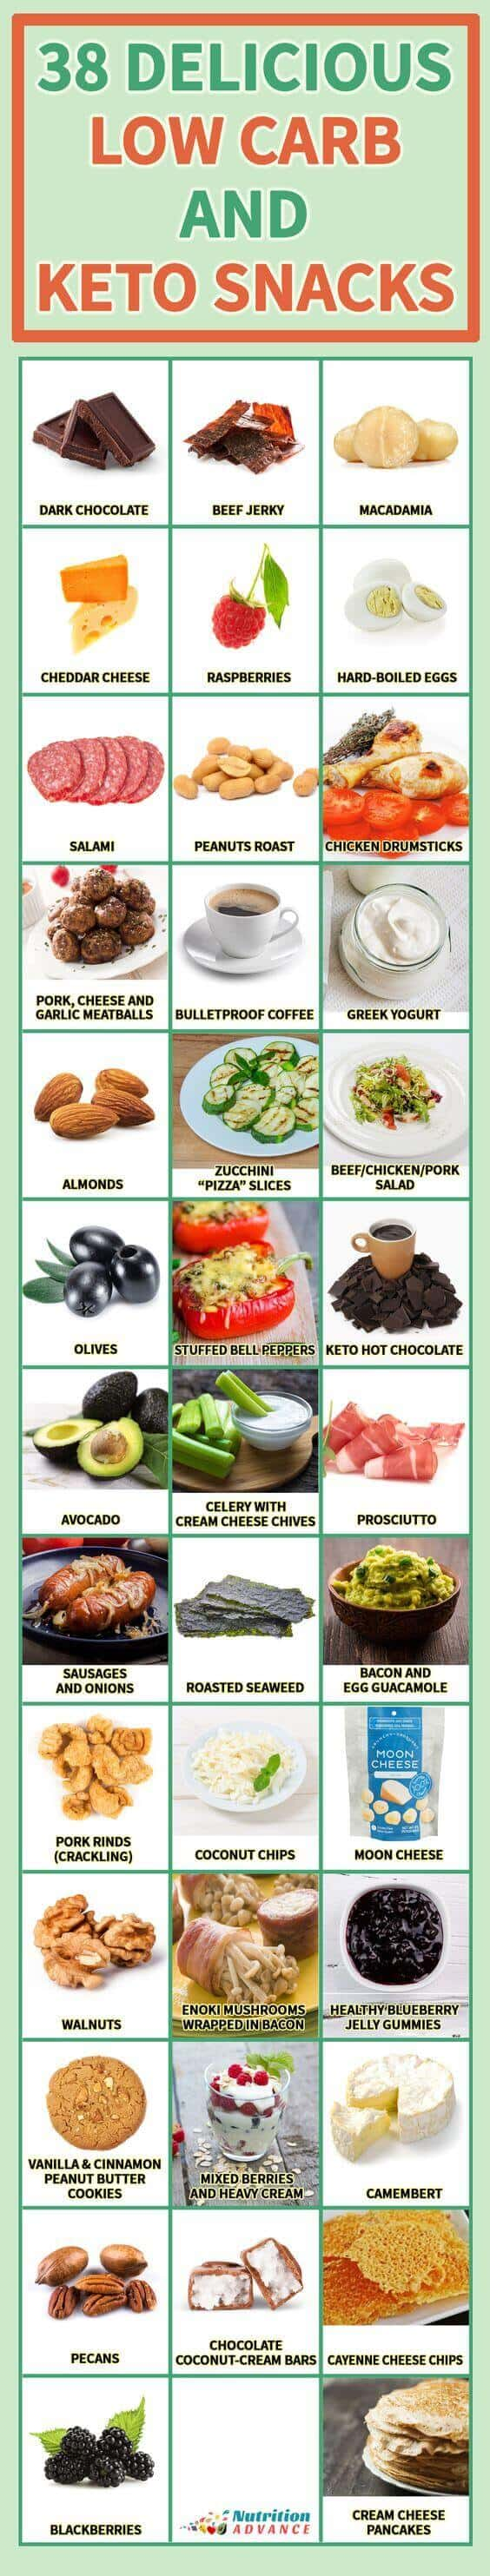 5 Low-Carbs Snacks!